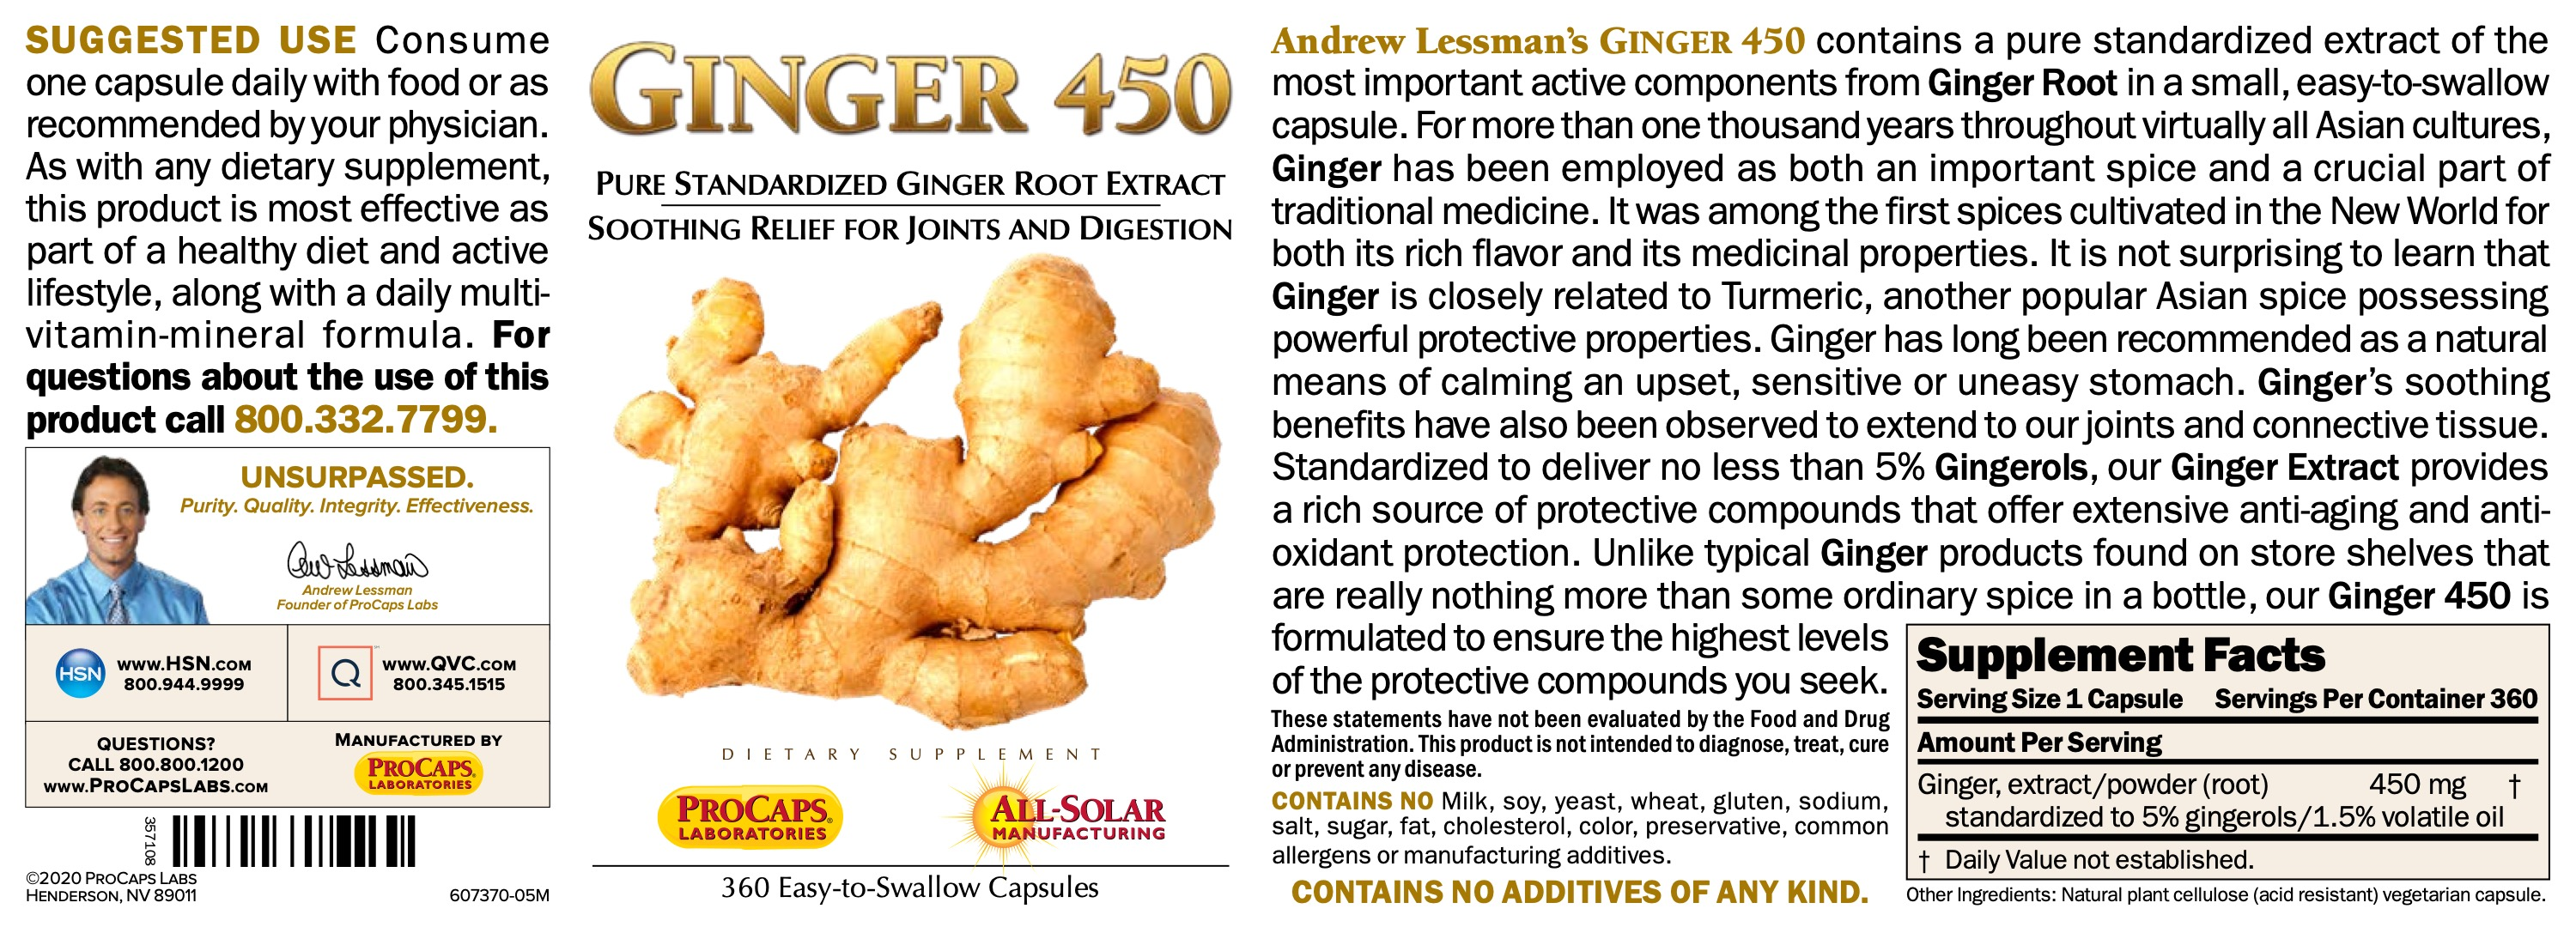 Ginger-450-Capsules-Digestive-Support